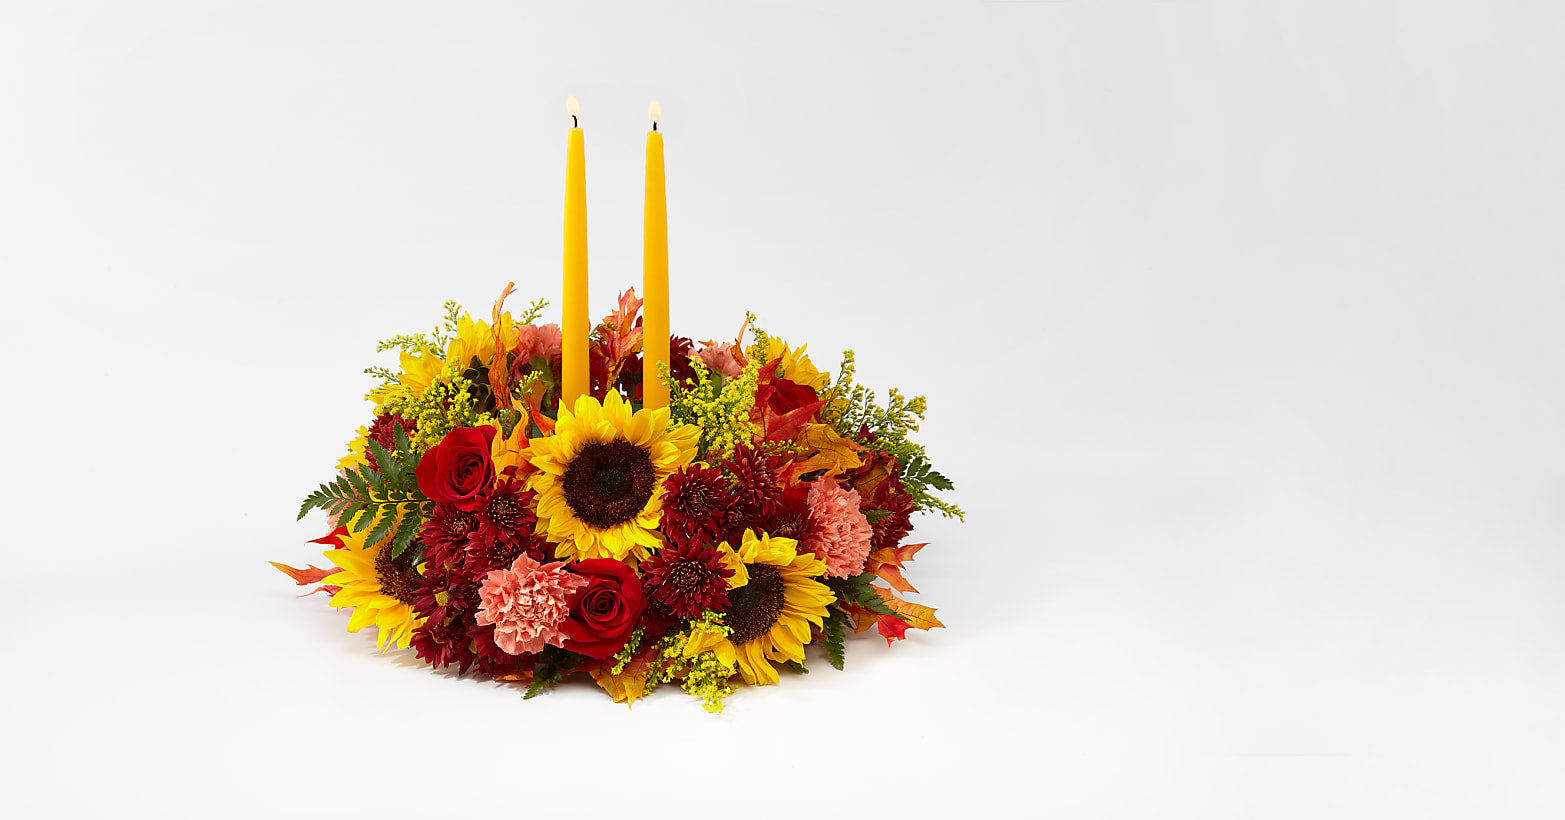 Giving Thanks Candle Centerpiece - Image 1 Of 2